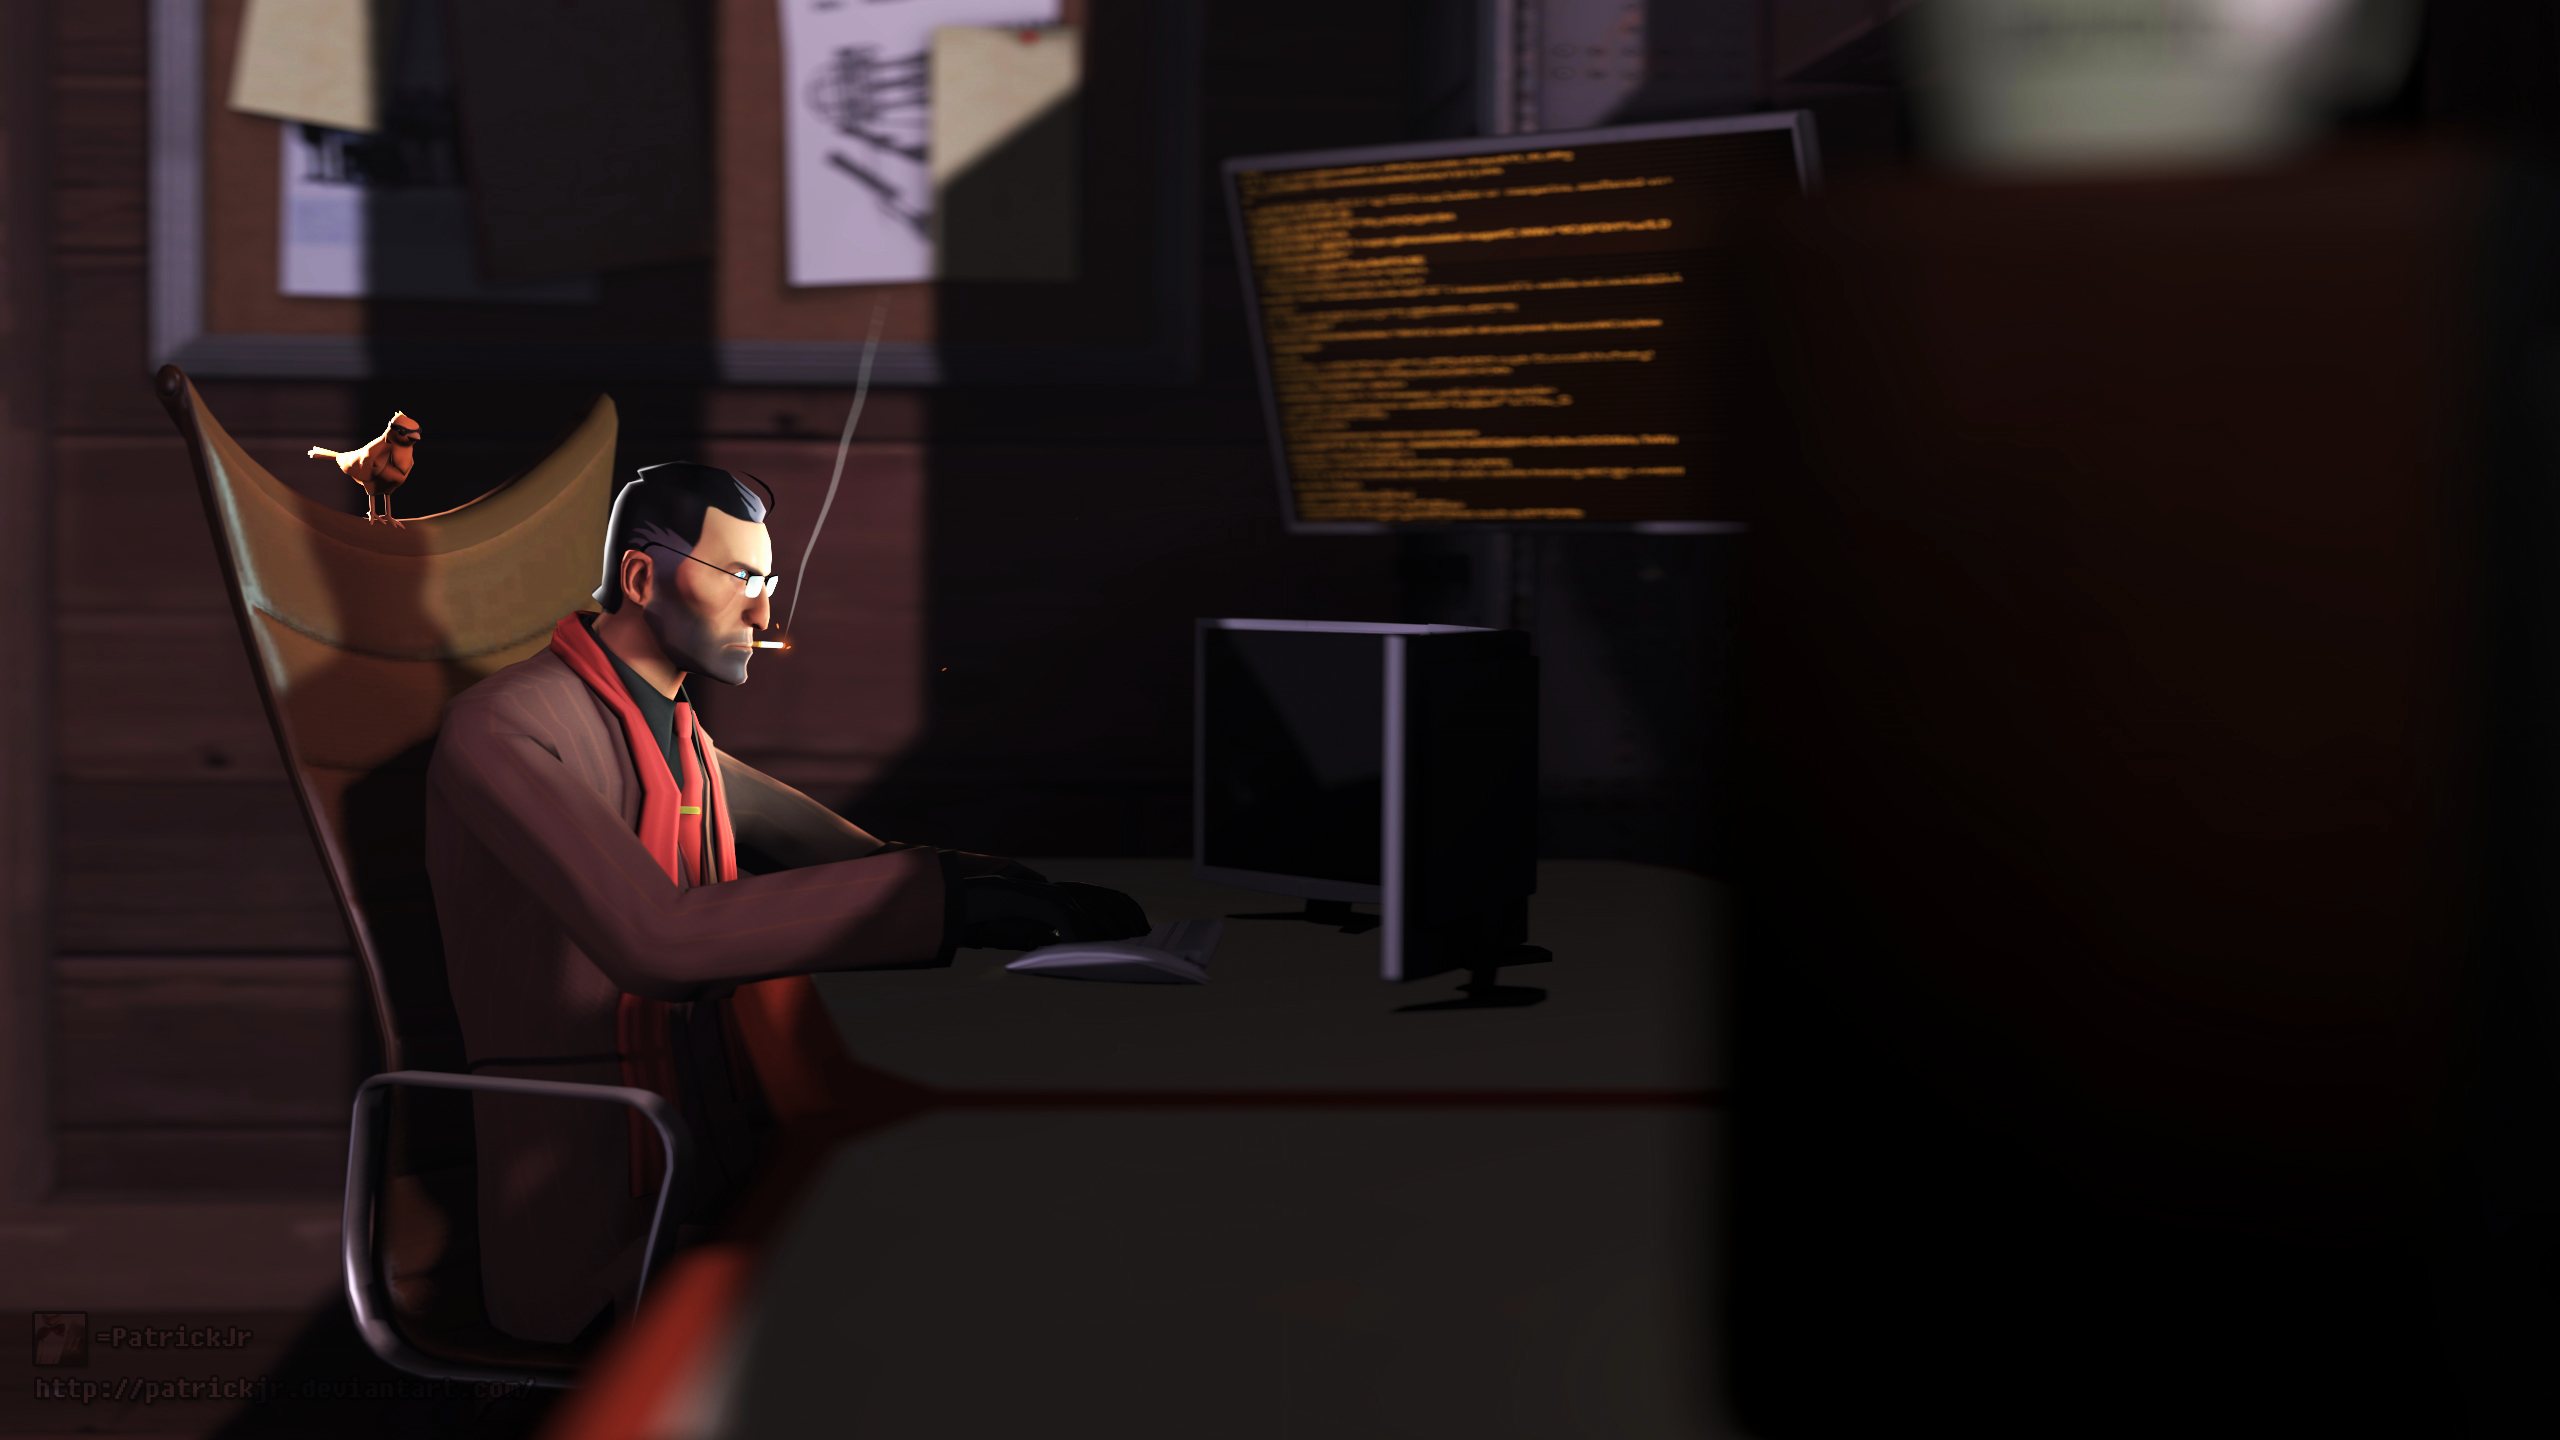 SFM Poster: The Mastermind by PatrickJr